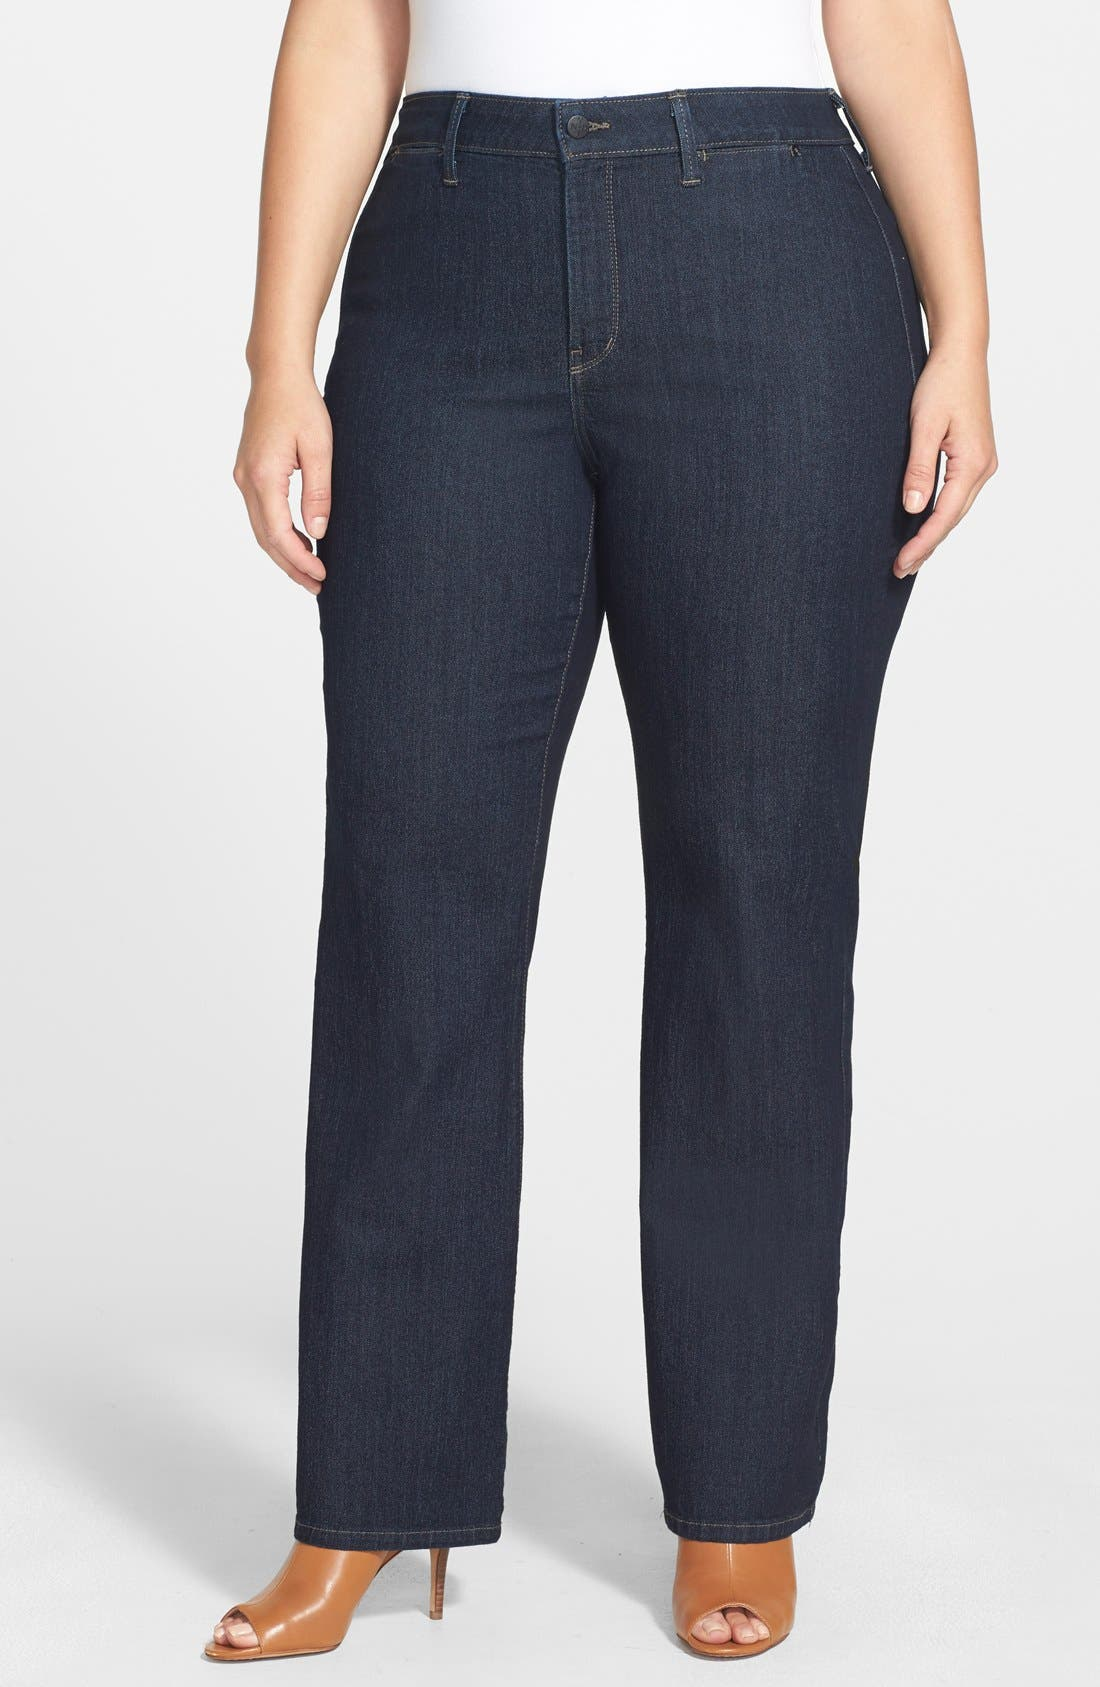 'Isabella' Stretch Trouser Jeans,                         Main,                         color, DARK ENZYME